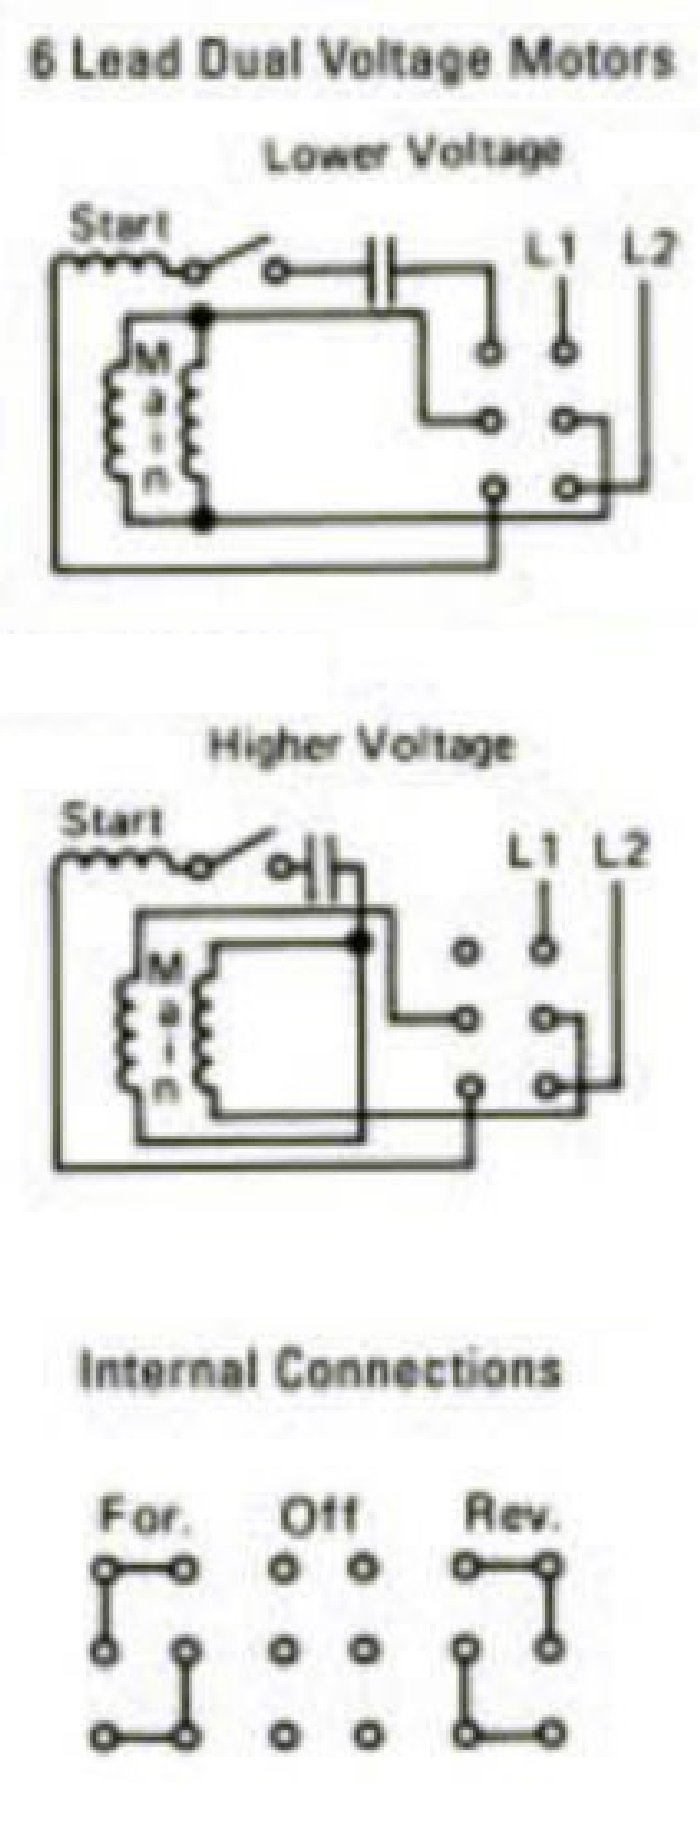 DIAGRAM] 3 Phase Bremas Drum Switch Wiring Diagram FULL Version HD Quality Wiring  Diagram - 1FENDERWIRING1.LALIBRAIRIEDELOUVIERS.FR1fenderwiring1.lalibrairiedelouviers.fr